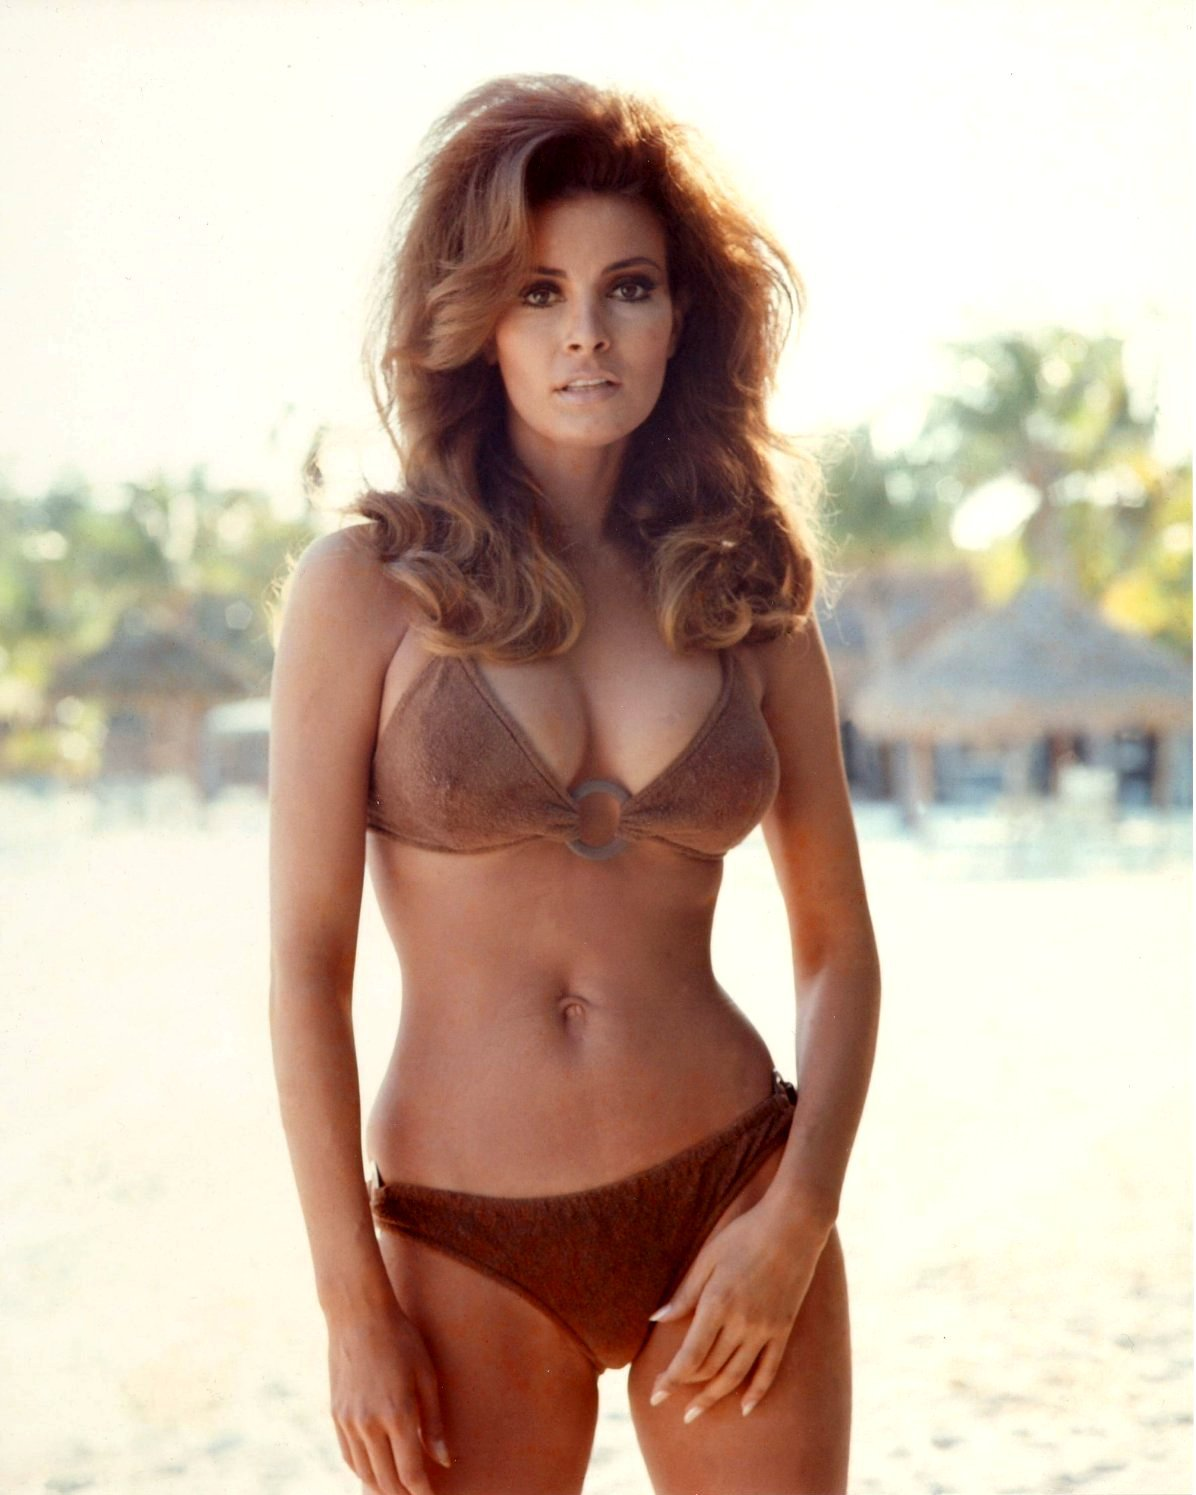 RAQUEL WELCH ACTRESS AND SEX-SYMBOL - 8X10 PUBLICITY PHOTO (SP-020)